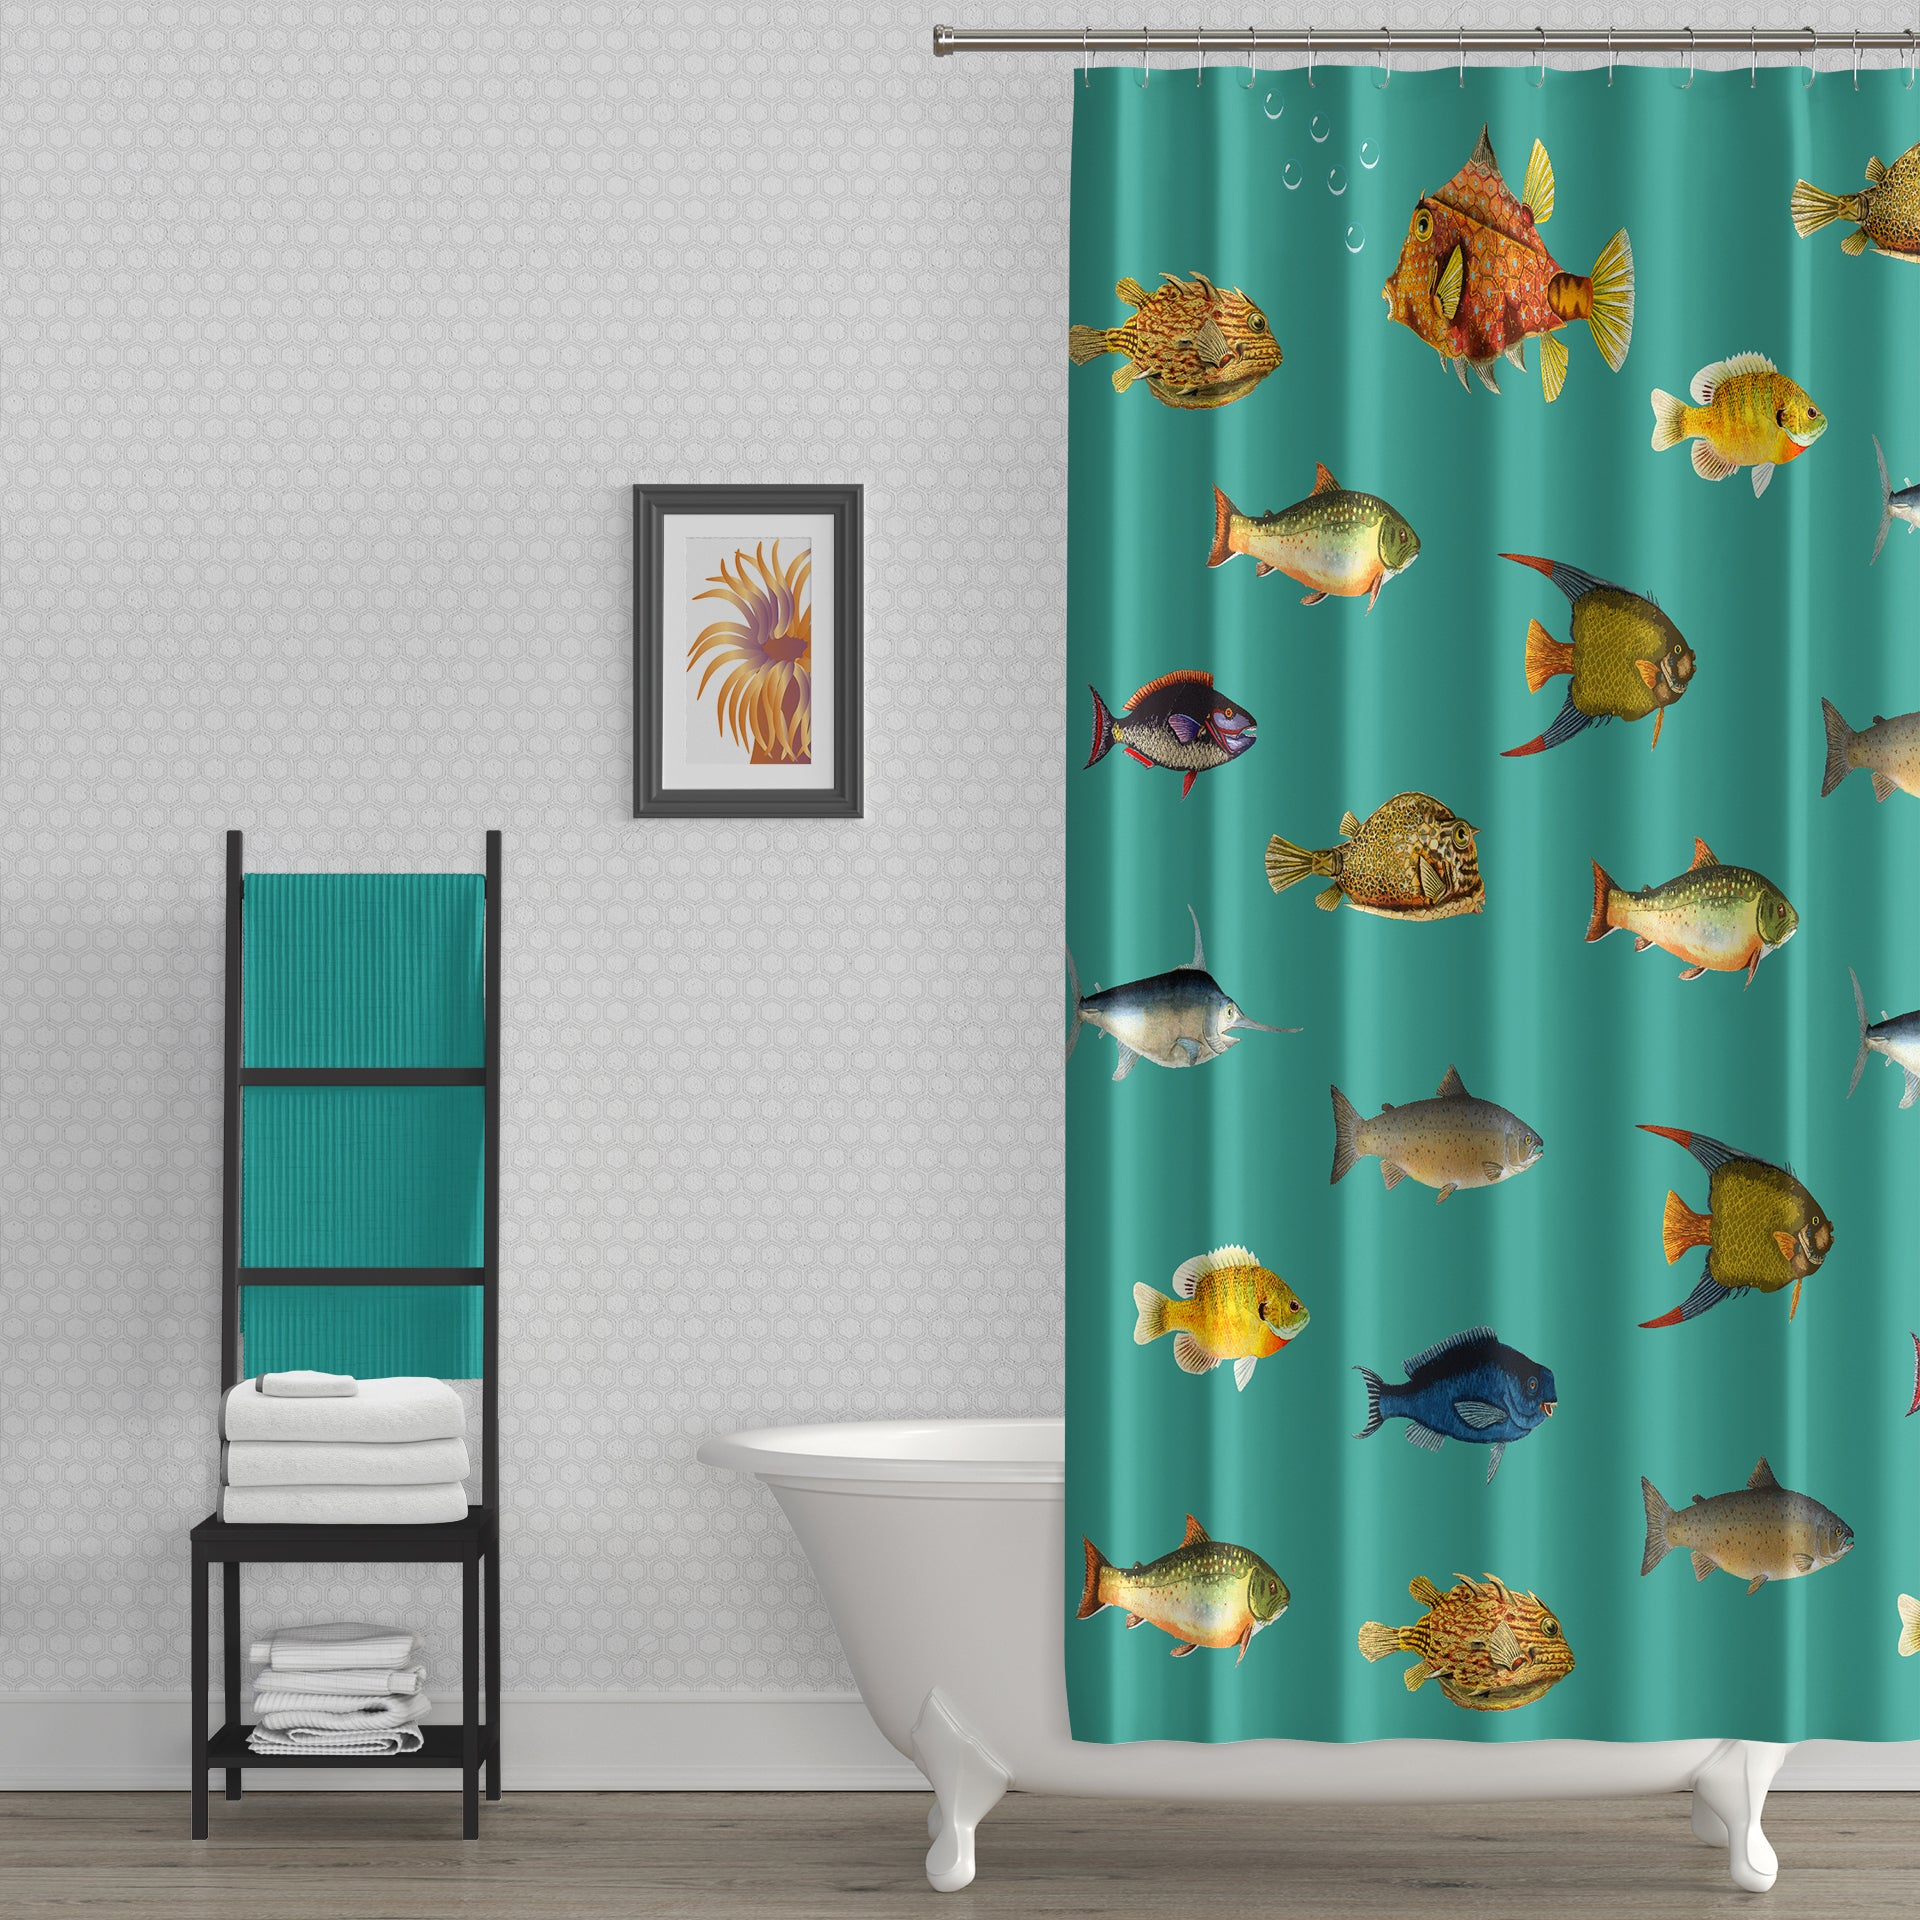 Rebel Fin Retro Teal Blue Fabric Shower Curtain Goodsnark